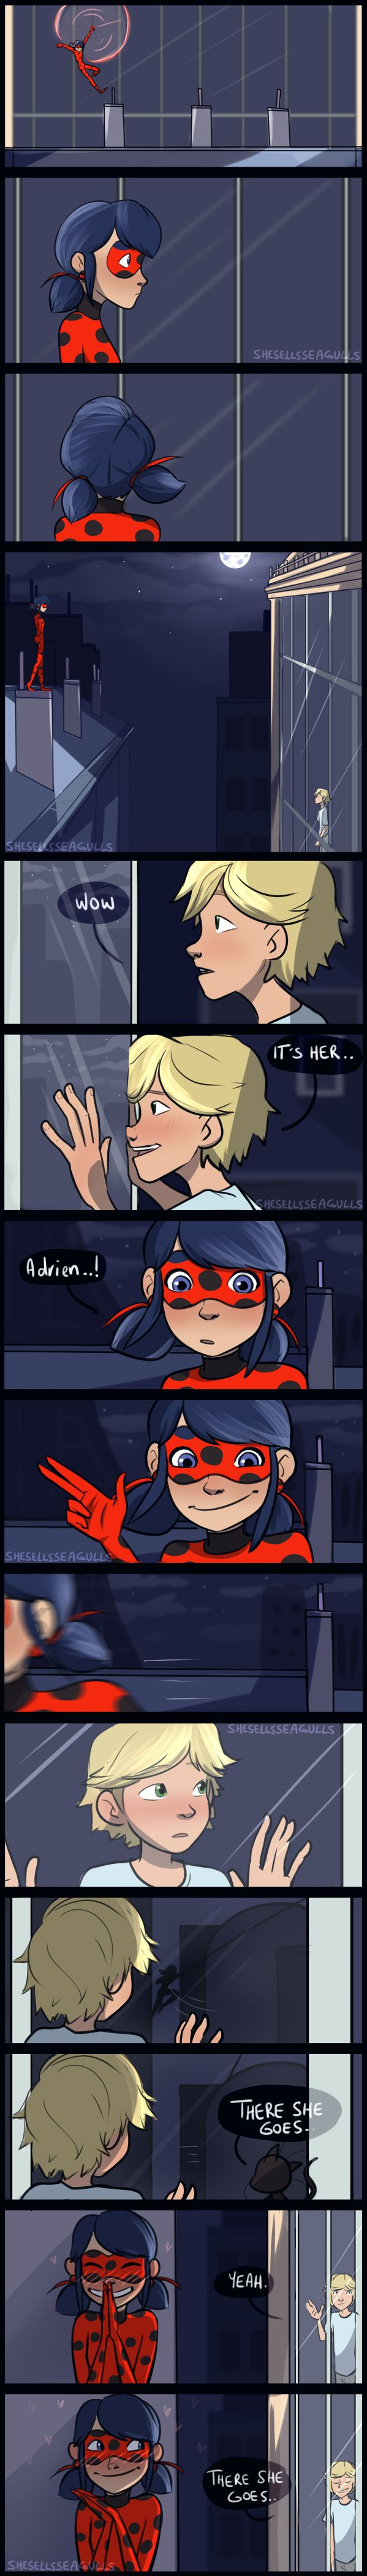 thereshegoes (ladybug comic) by she-sells-seagulls on DeviantArt  Is is me or does the part when mari makes a hand signal her fingers look huge... just saying... . .  But still cute!